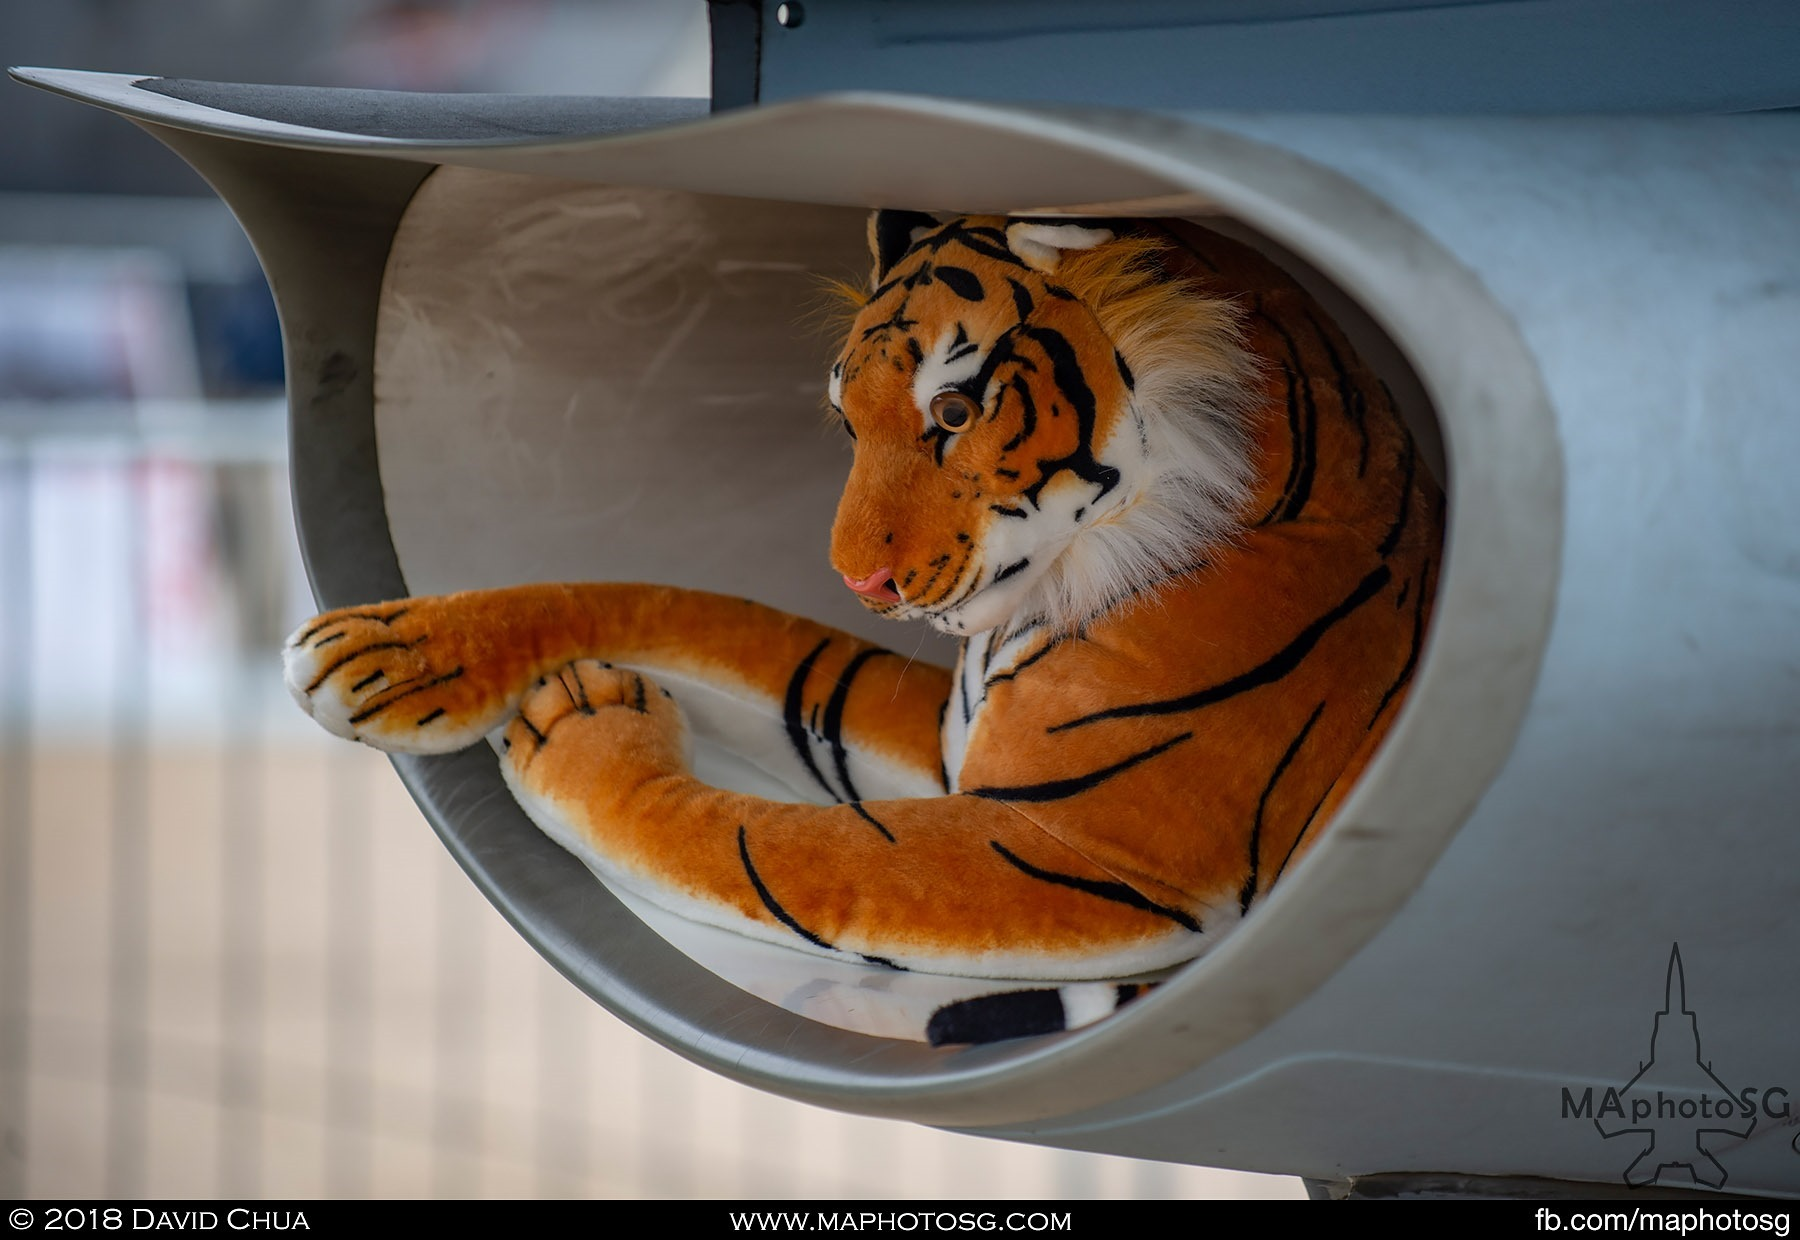 06. Tiger in the air intake of the Polish Air Force F-16